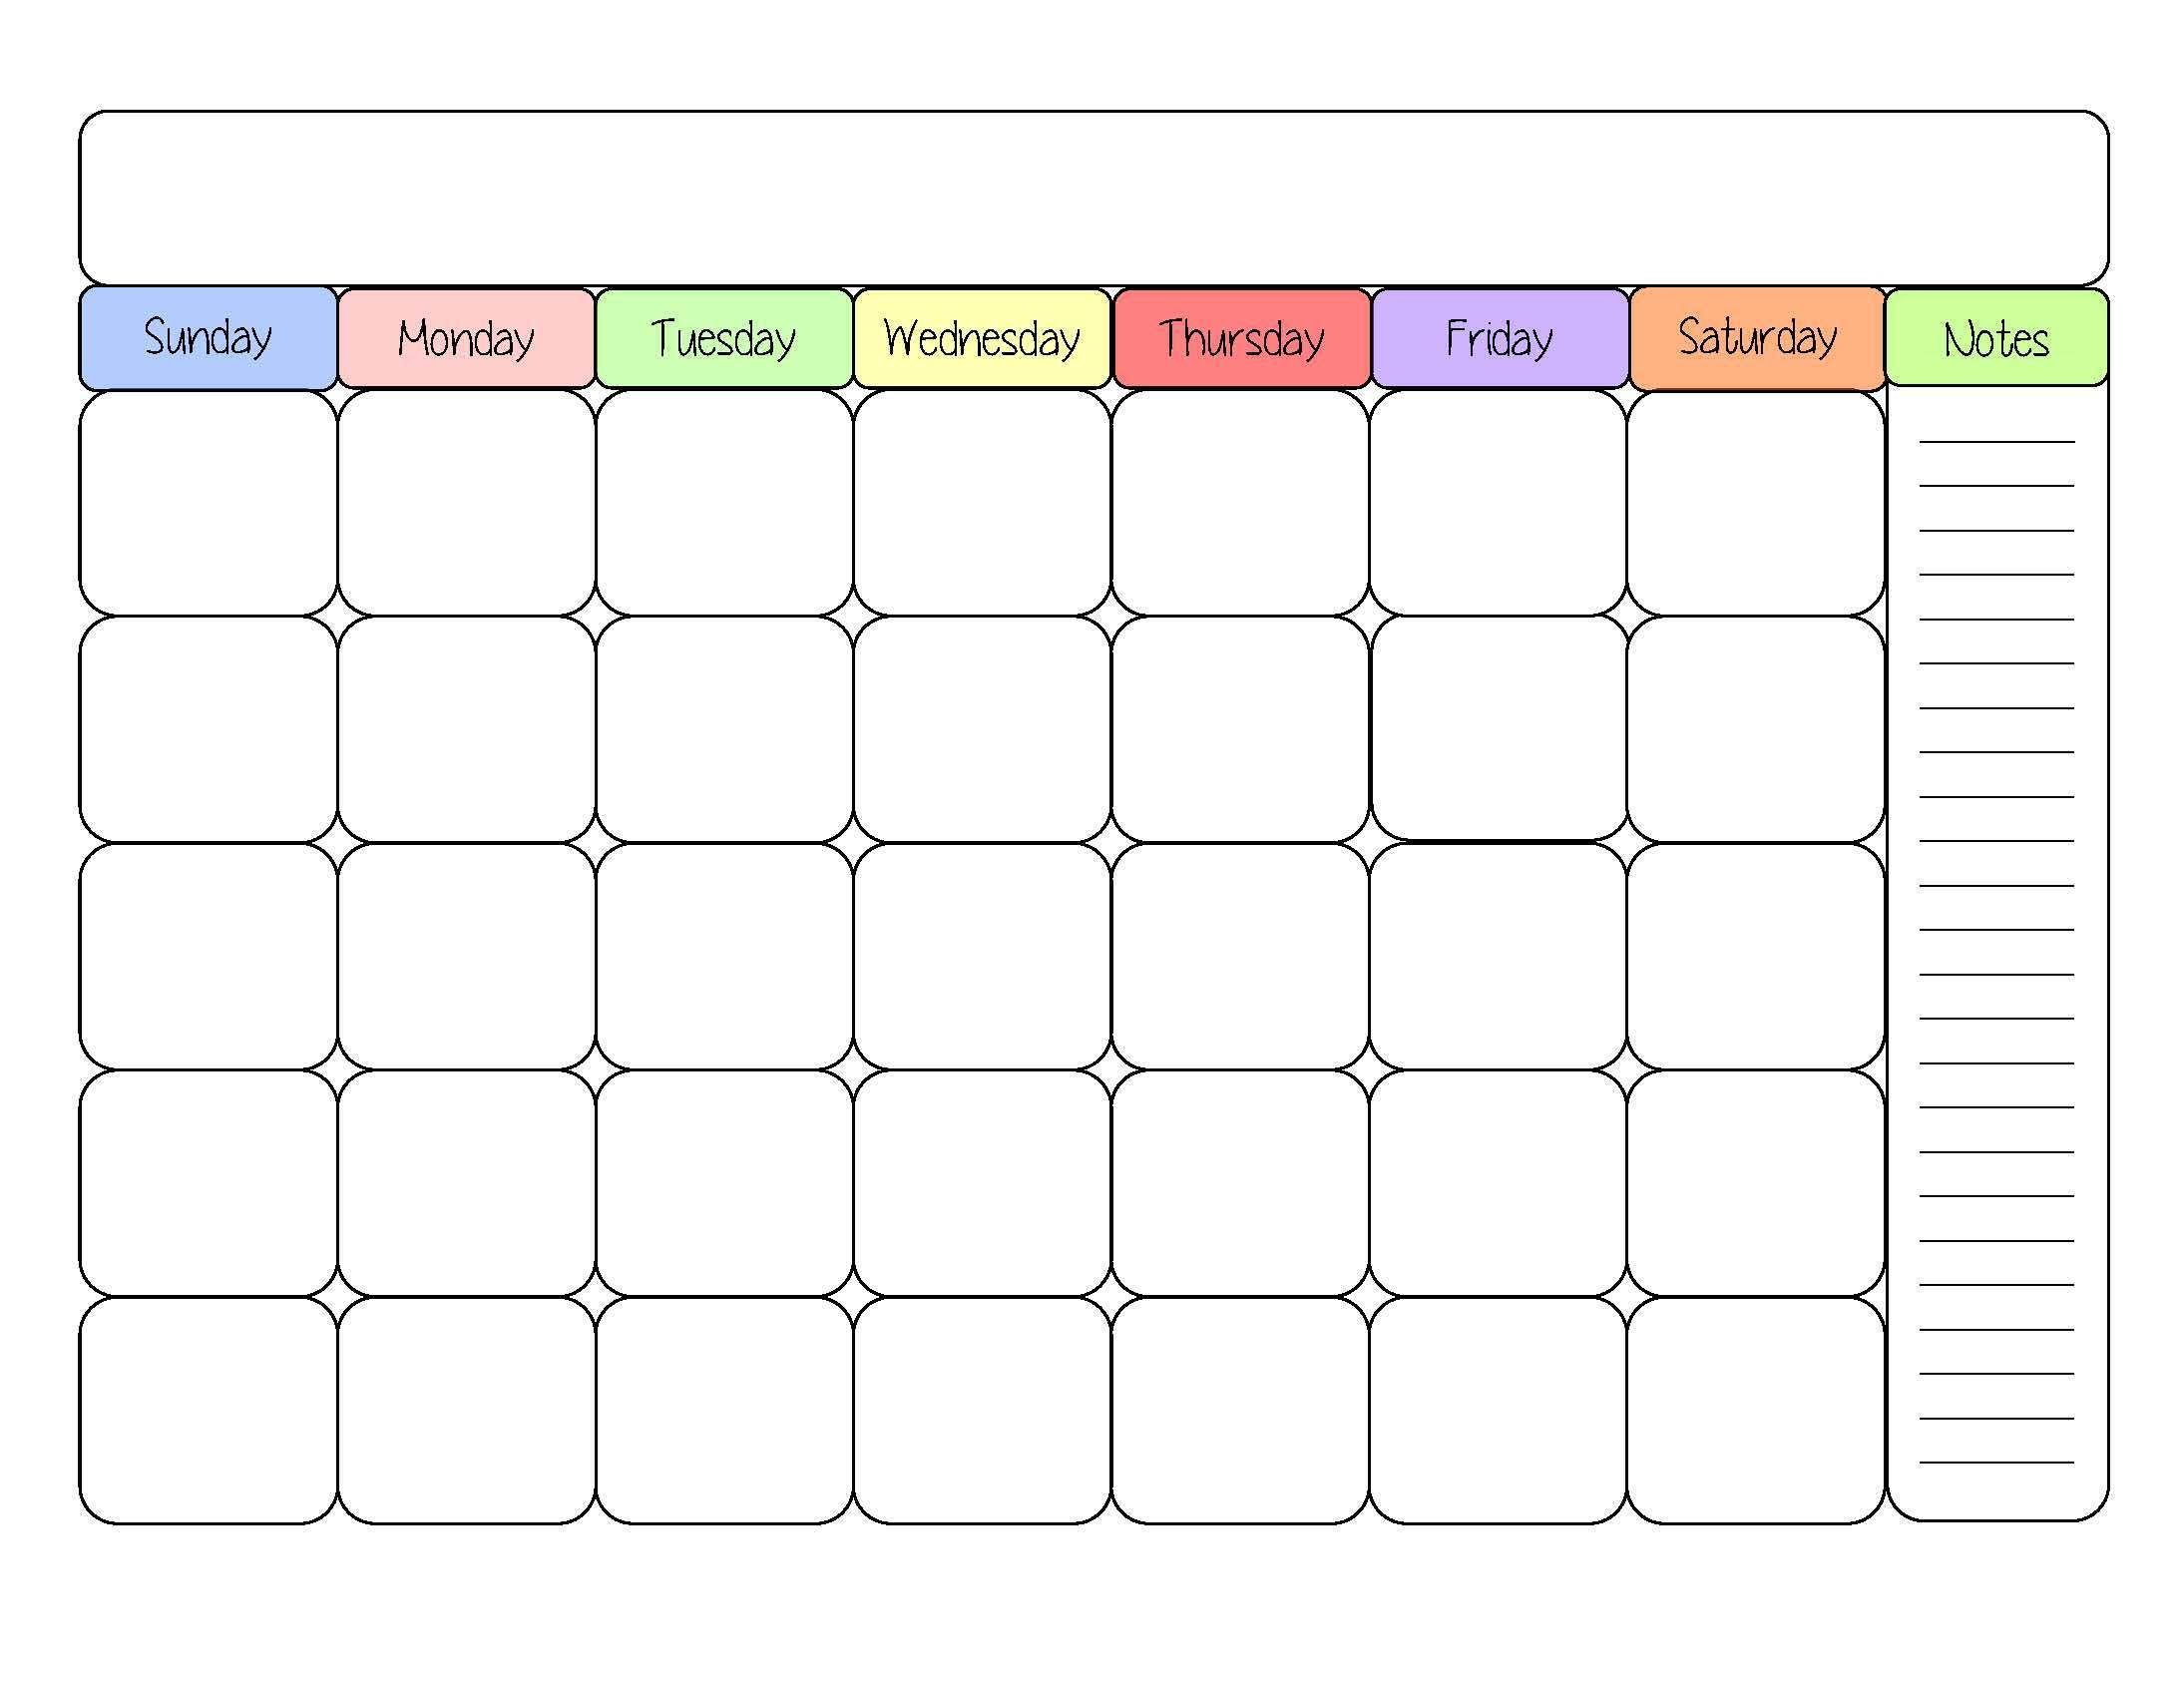 Download and print this blank 2021 monthly calendar template with easy to write in large boxes in landscape layout. Print Blank Calendar • Printable Calendar Template ...